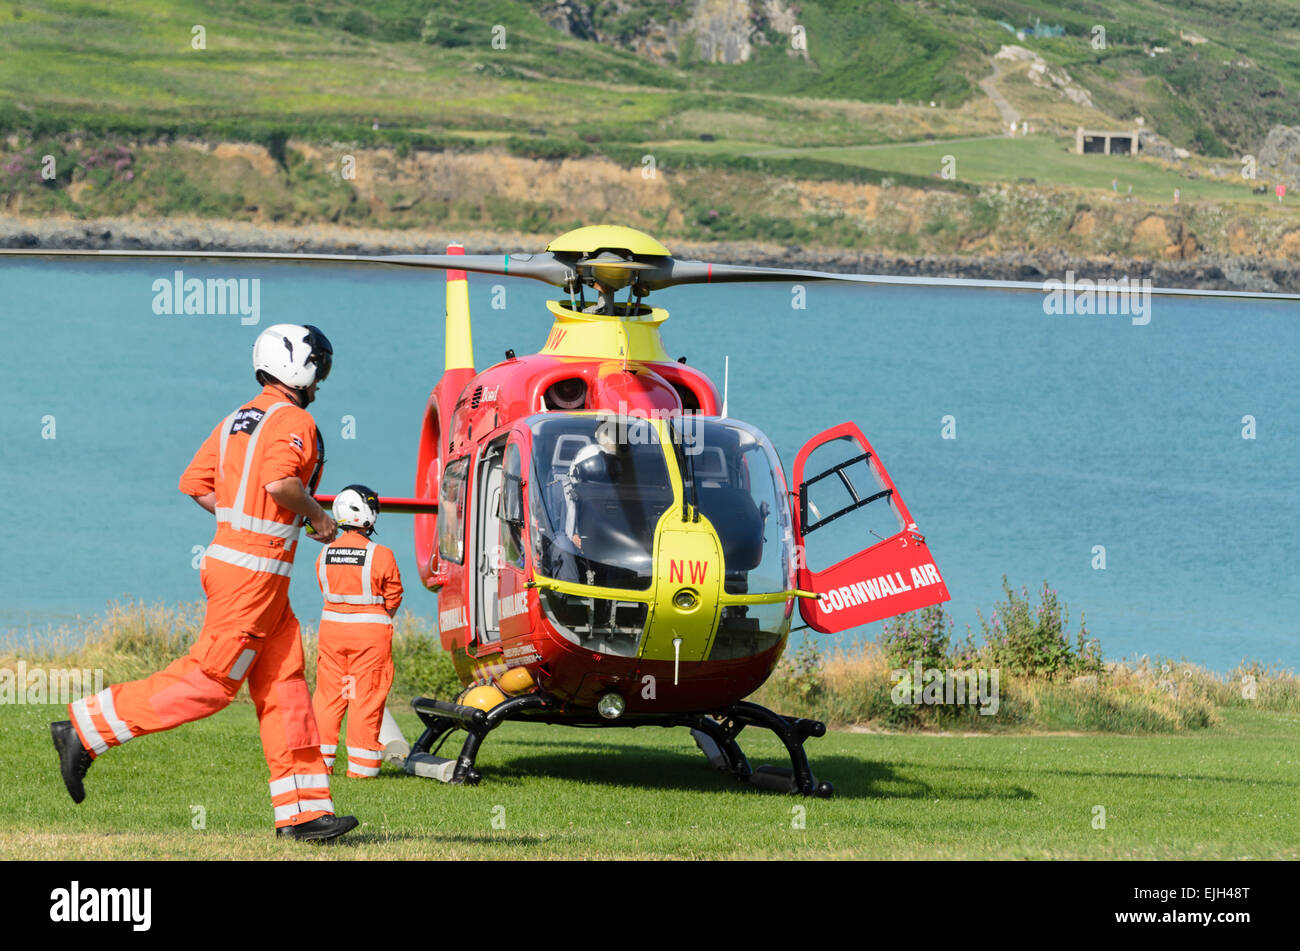 Eurocopter EC135 of Cornwall Air Ambulance about to take off from St Ives, Cornwall, U.K. - Stock Image